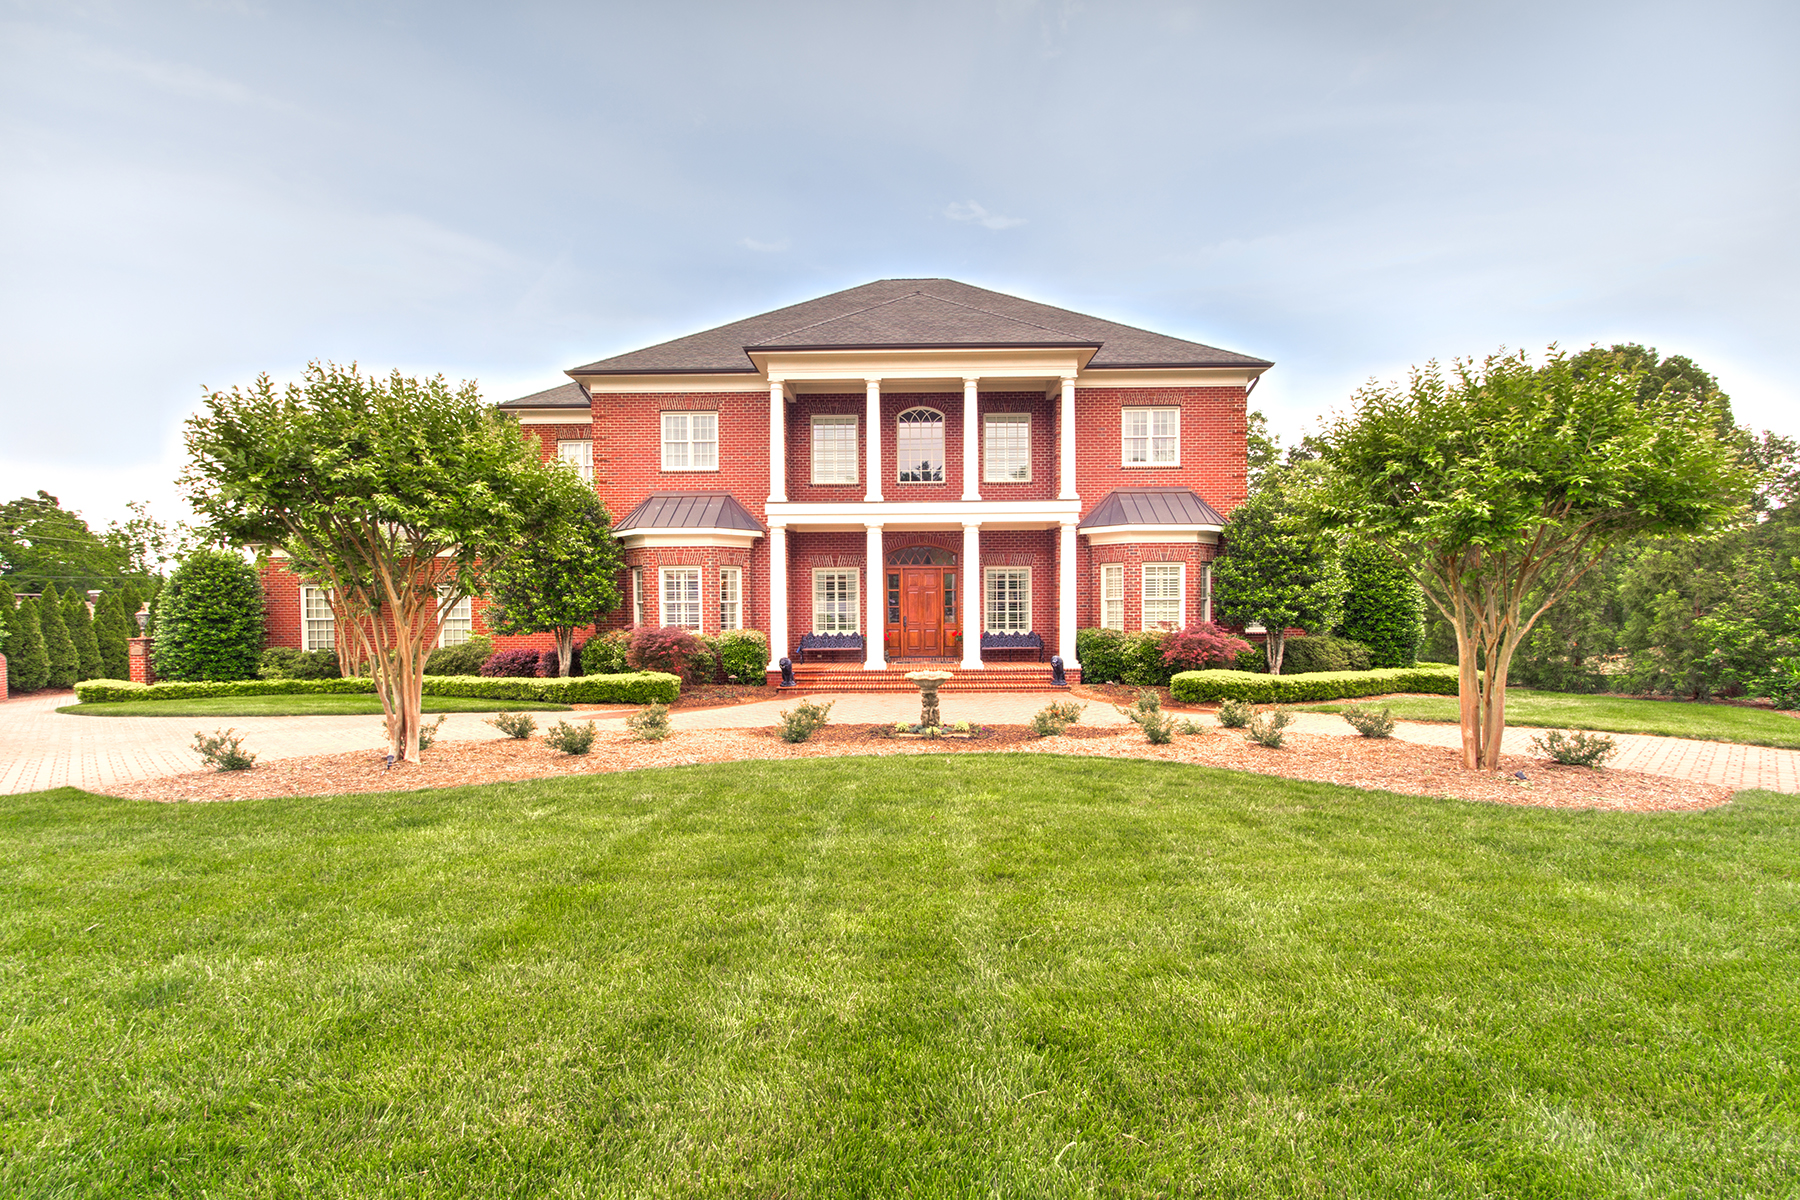 Single Family Home for Sale at CARMEL COUNTRY CLUB 5009 Green Rea Rd Charlotte, North Carolina, 28226 United States